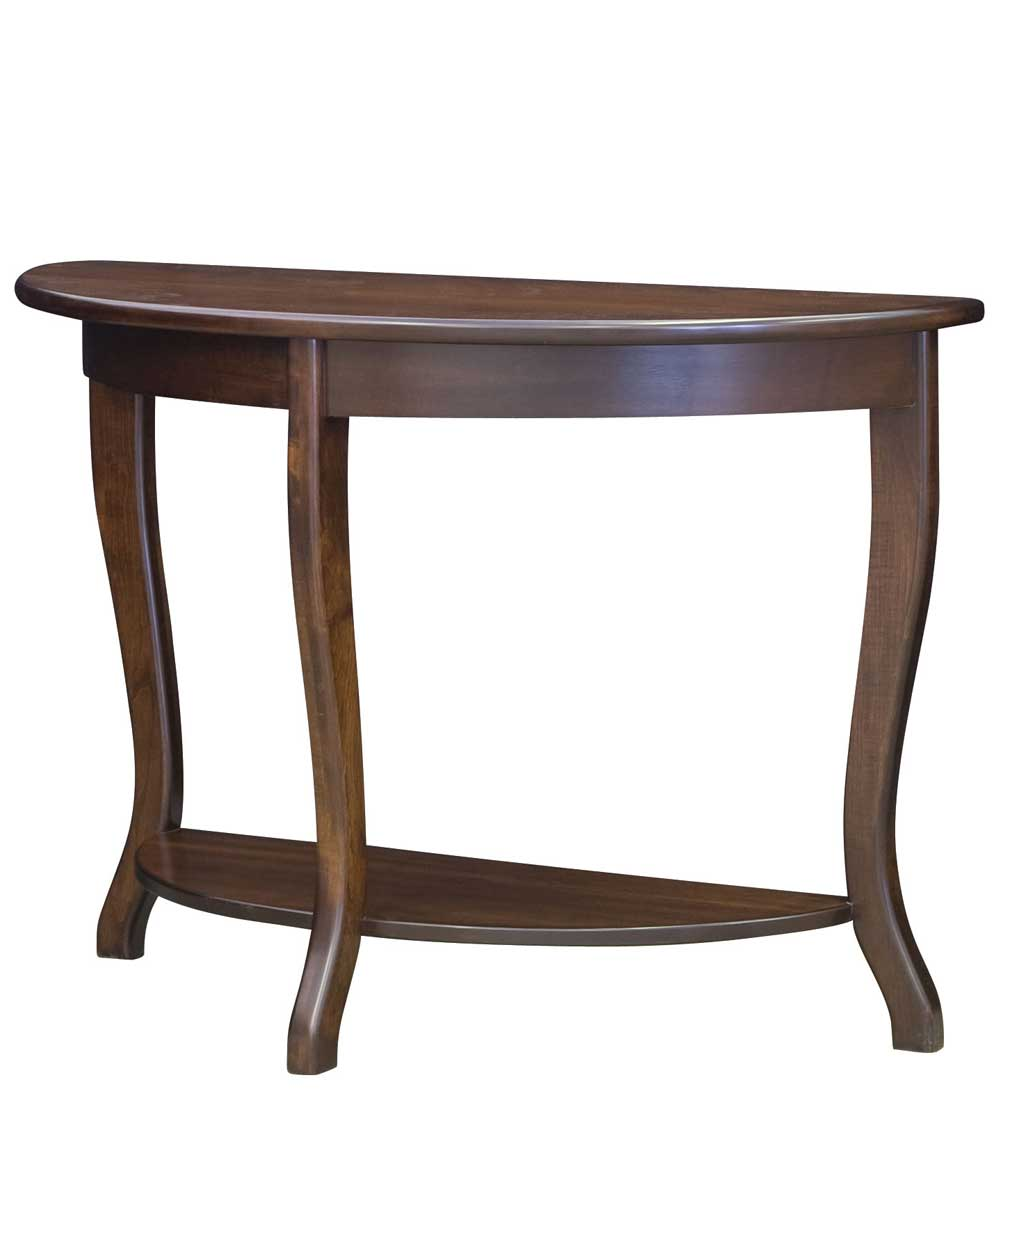 Crestline sofa table amish direct furniture crestline sofa table geotapseo Image collections